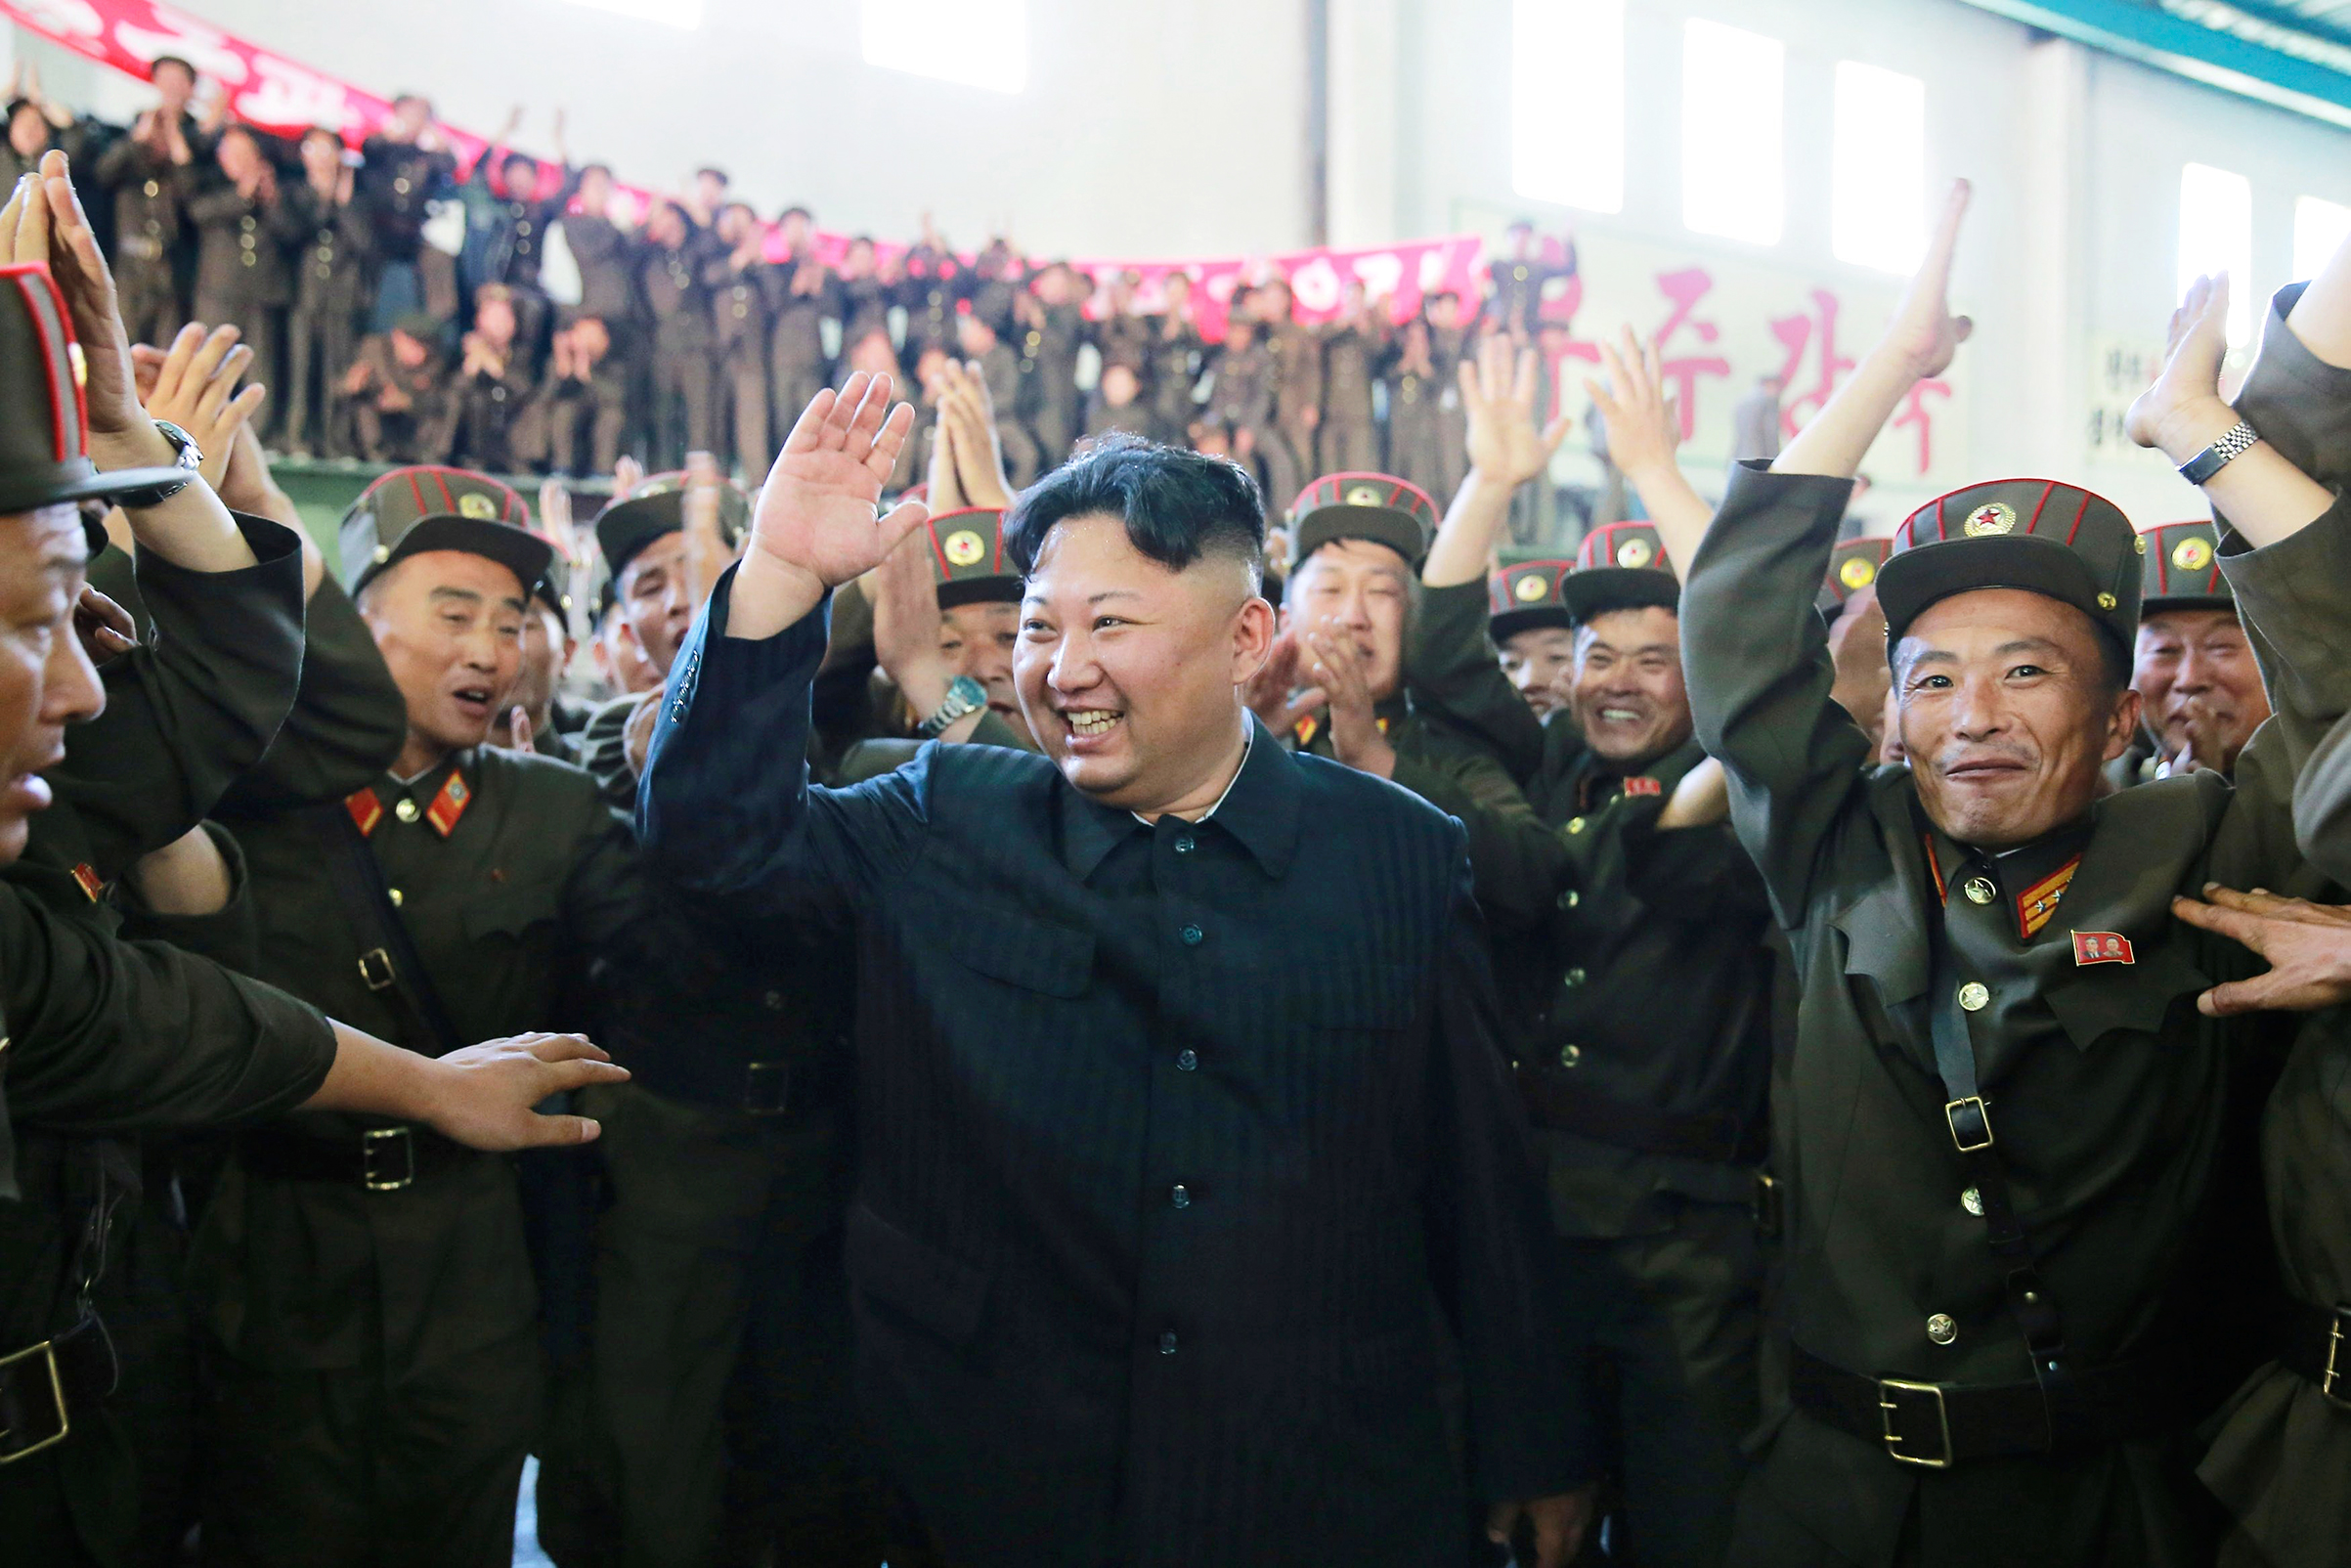 Kim celebrates the test launch of the Hwasong-14 ICBM in this photo released by the North Korean government on July 5